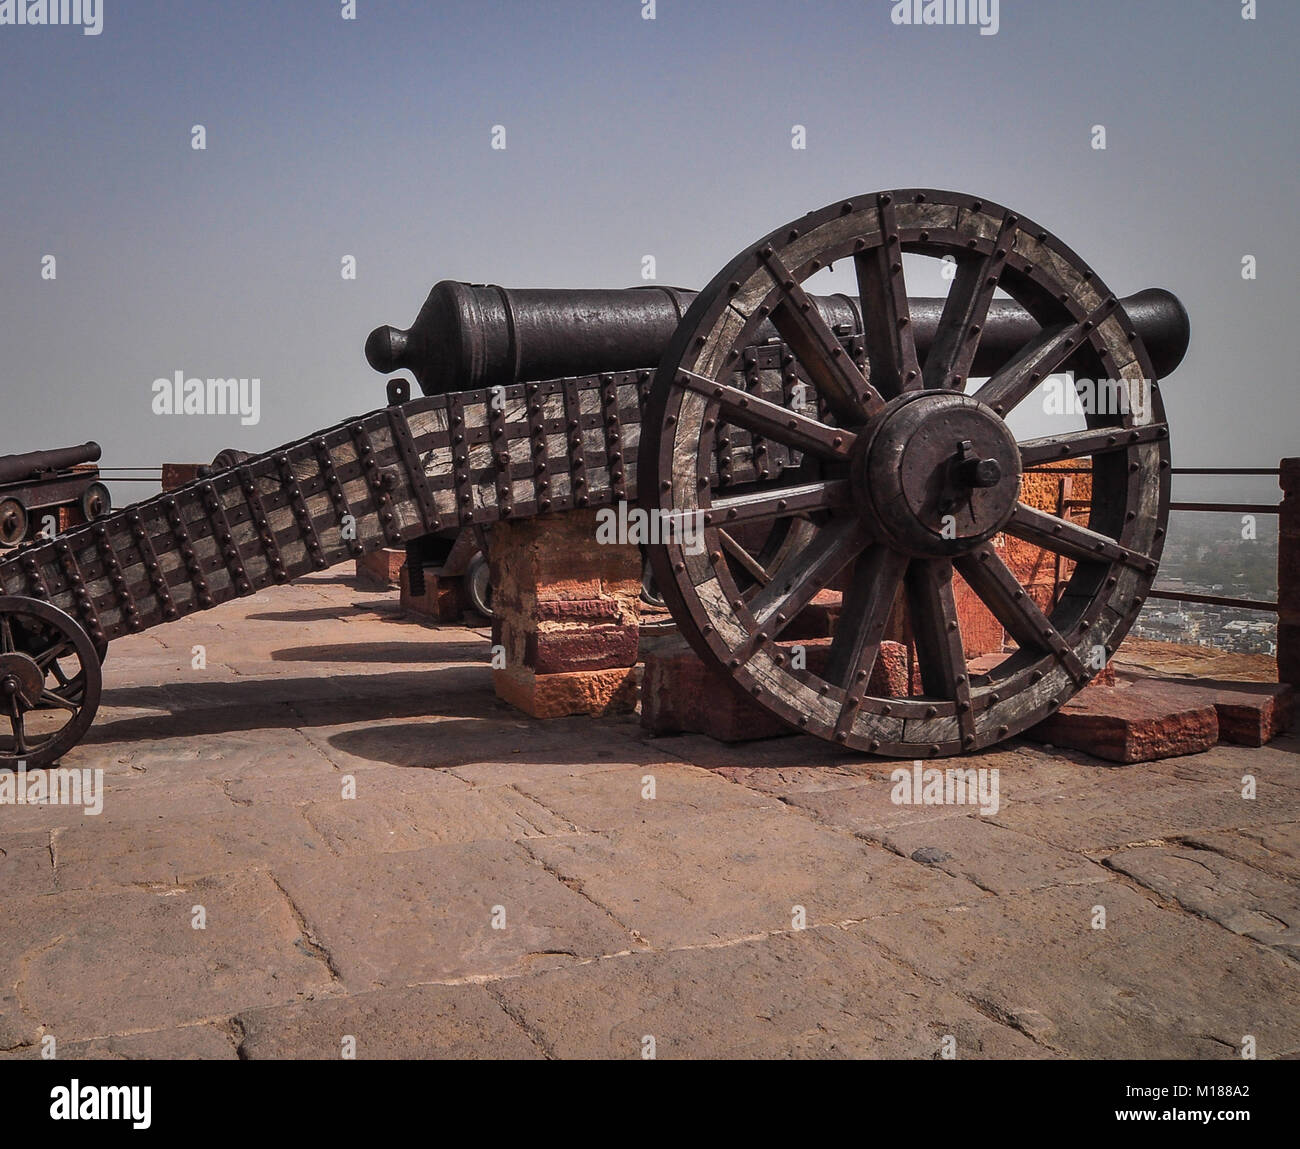 Ancient cannon on wheels of Mehrangarh (Mehran Fort) in Jodhpur, Rajasthan State, India. - Stock Image